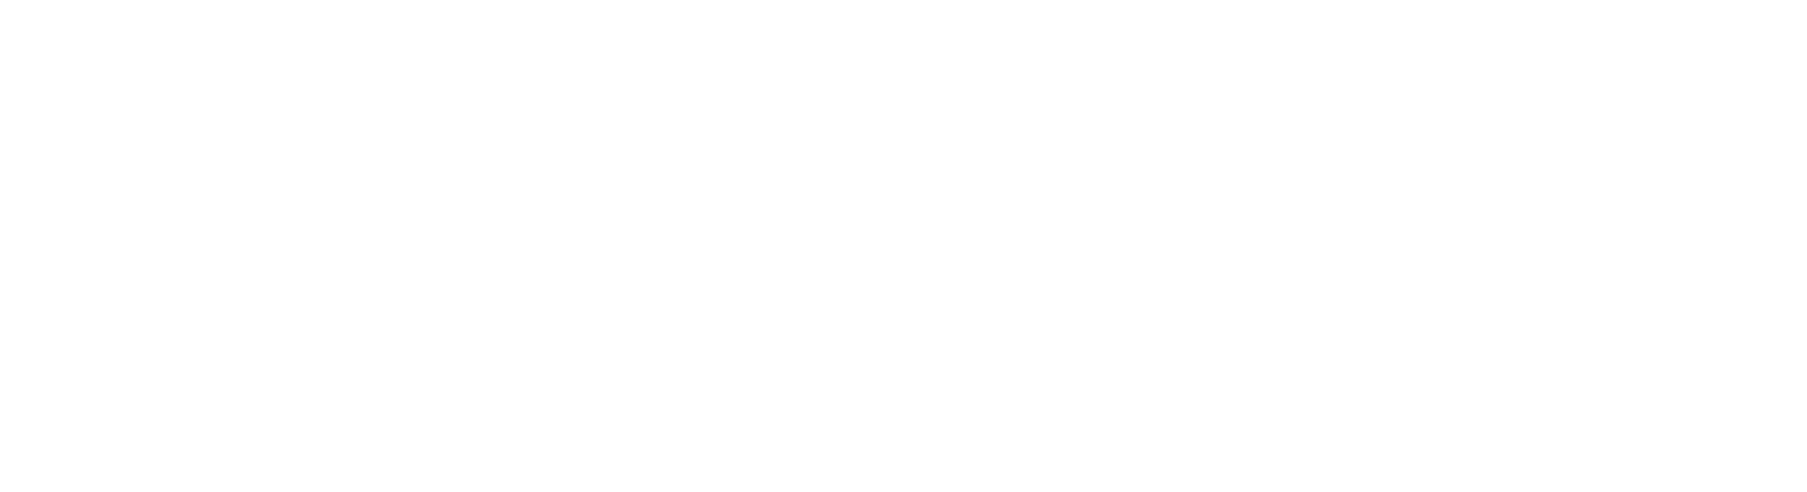 24 Hour Mold Removal Logo White